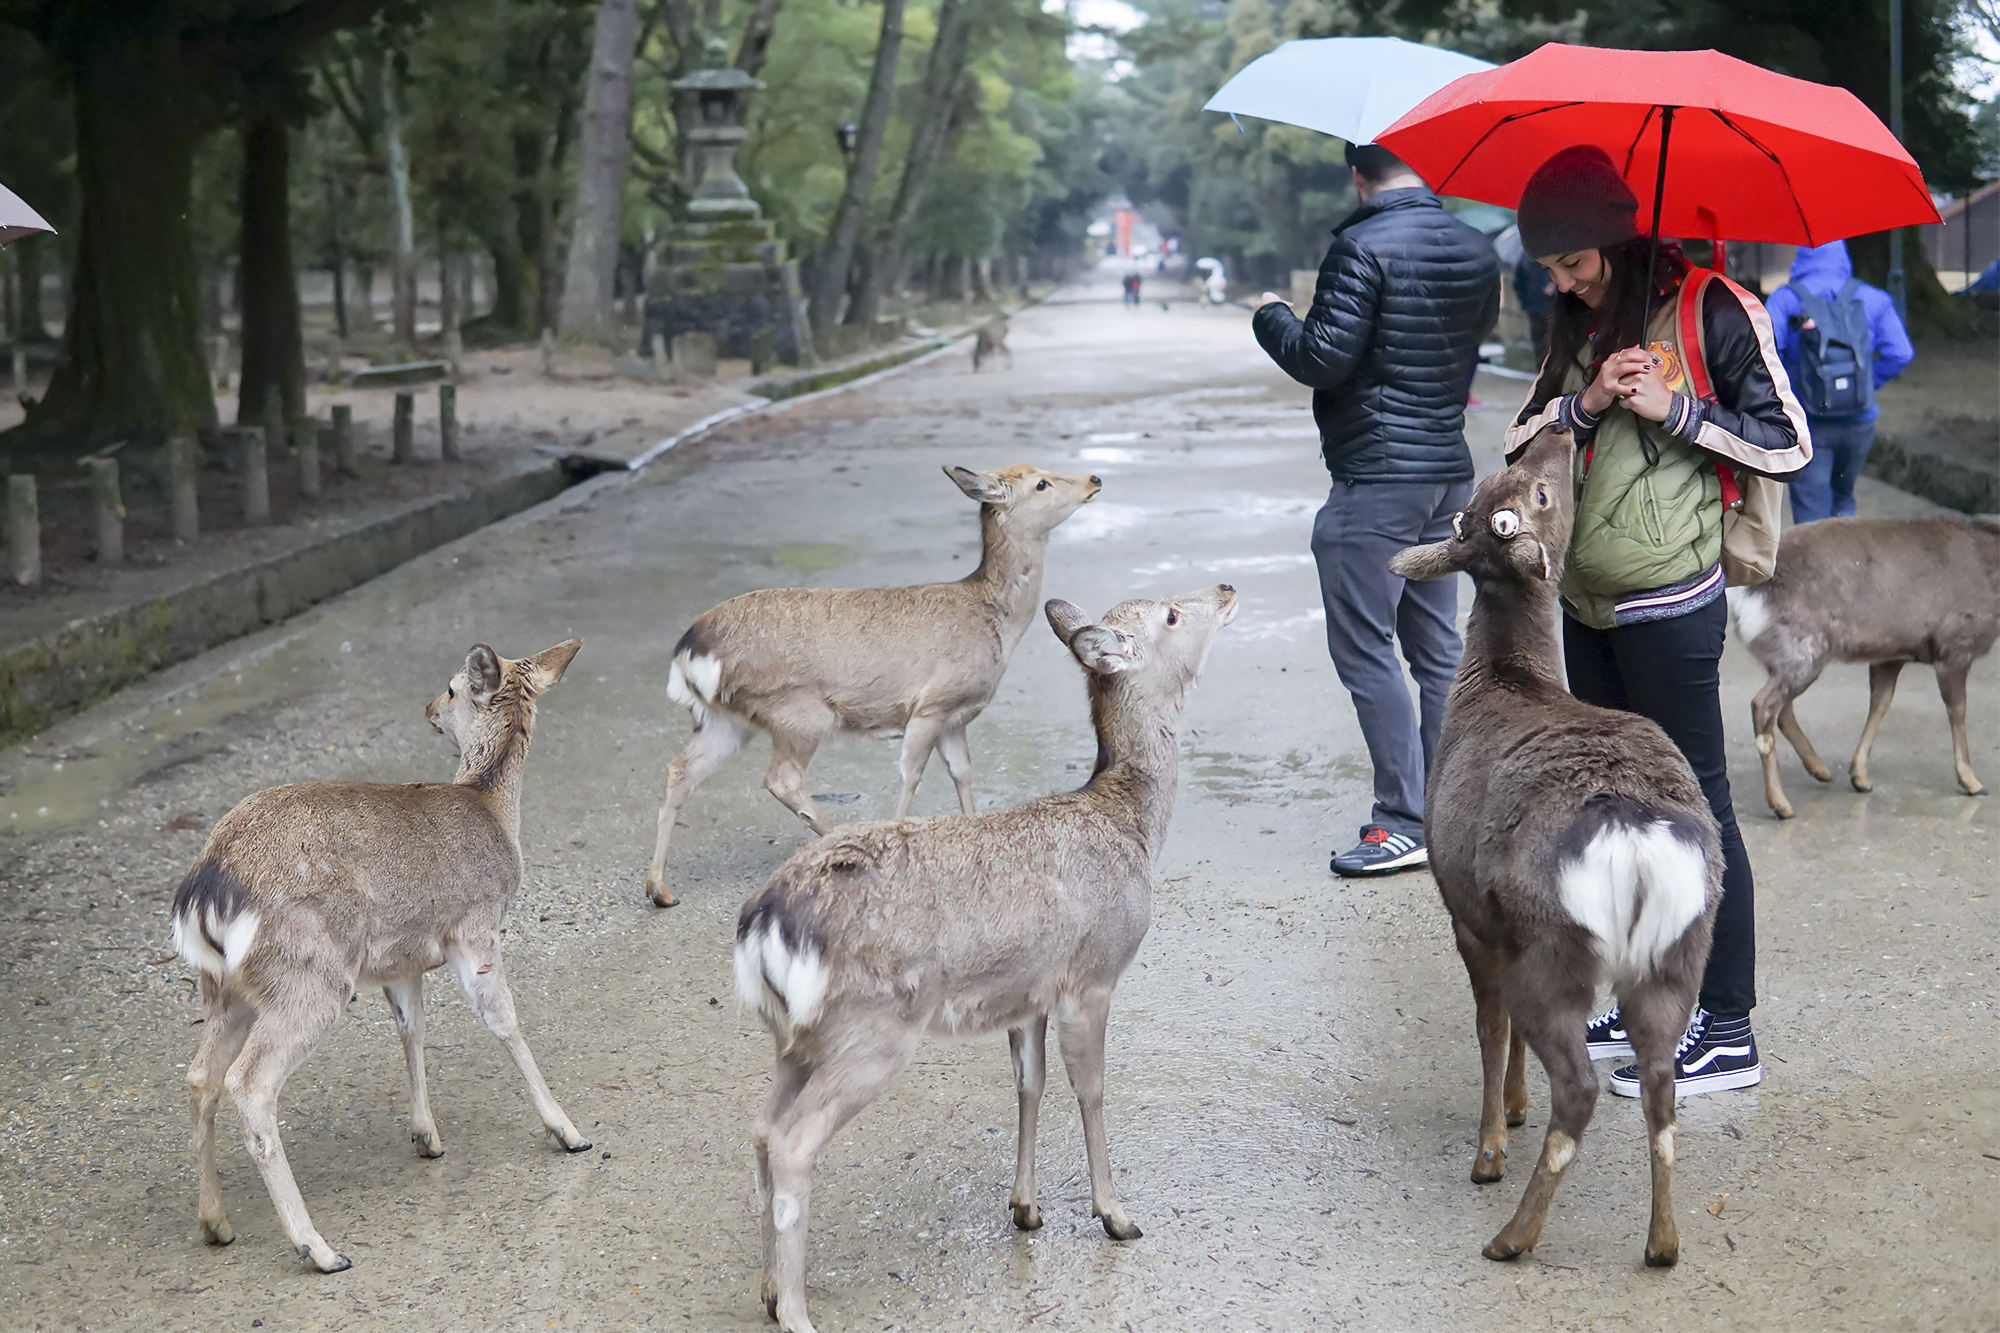 chrissihernandez_japan-narapark.jpg